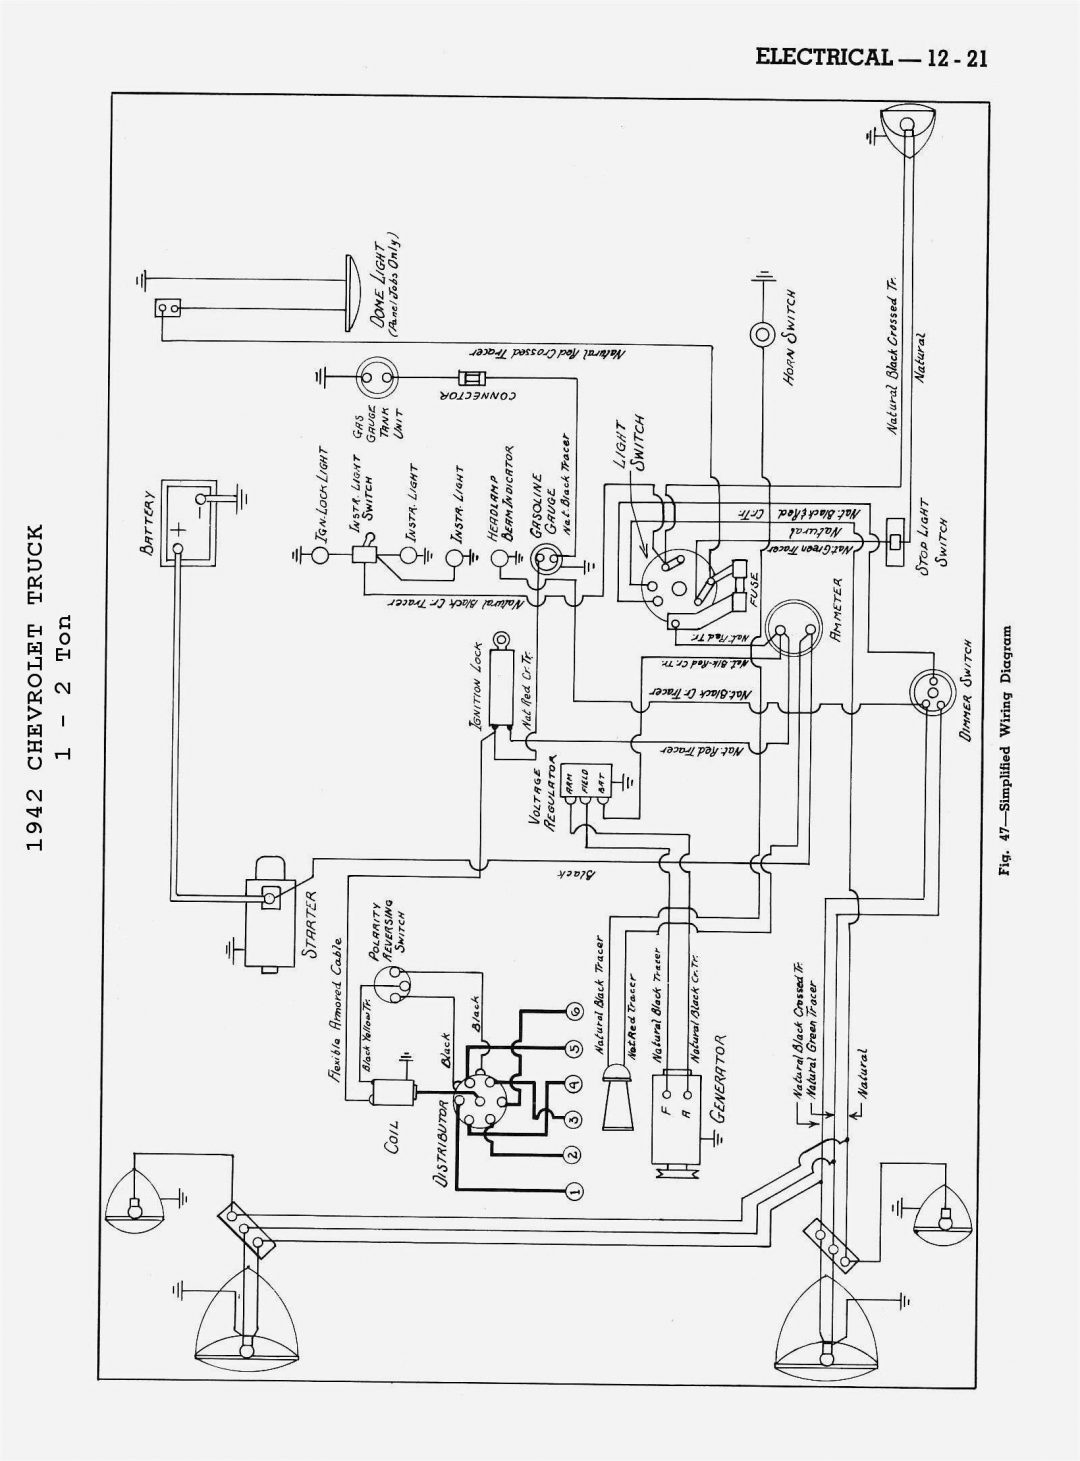 Telecaster Drawing At Free For Personal Use Fender N3 Pick Up Wiring Diagram 1080x1461 Stratocaster On Download Wirning Diagrams